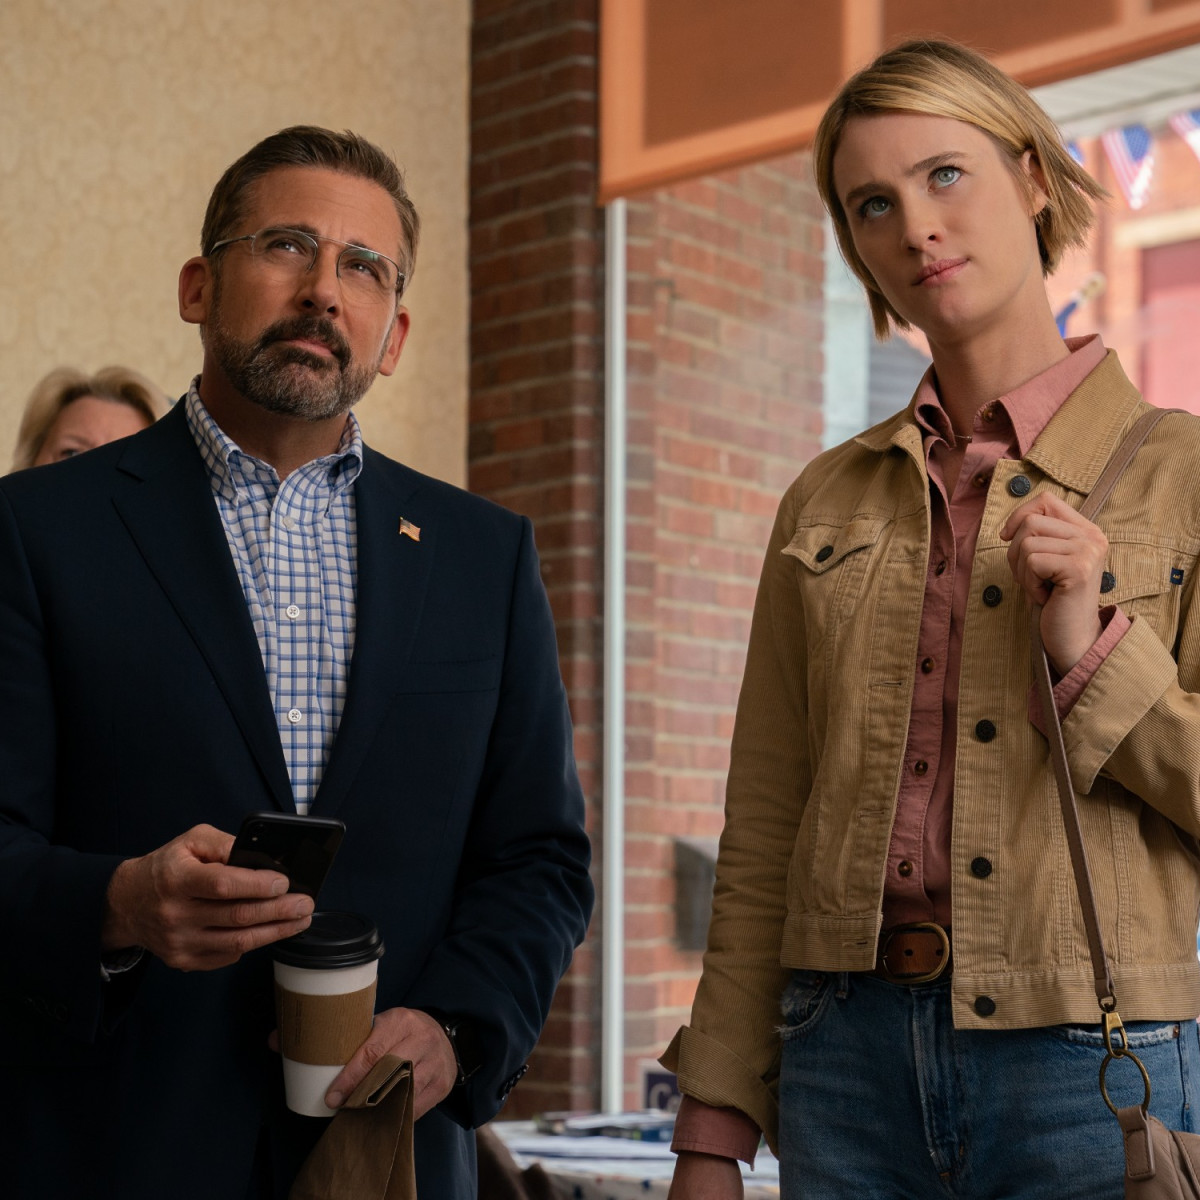 Steve Carell and Mackenzie Davis in Irresistible